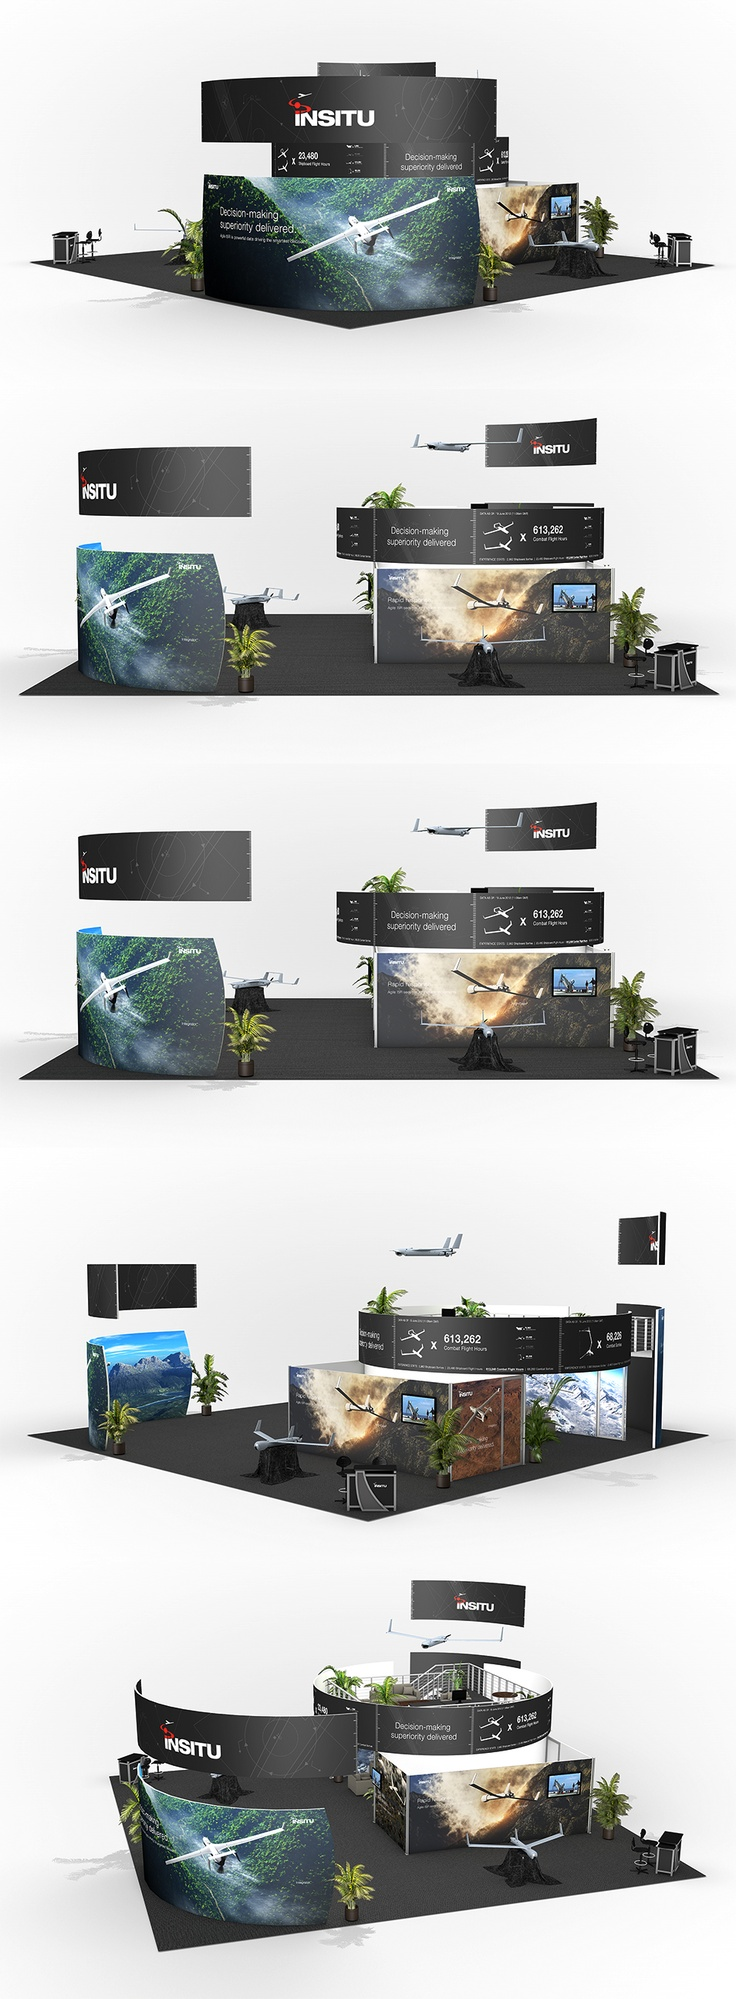 Creative Point of purchase displays and exhibition booths for trade-shows created by TriadCreativeGroup.com inspired by artistic design and architecture.